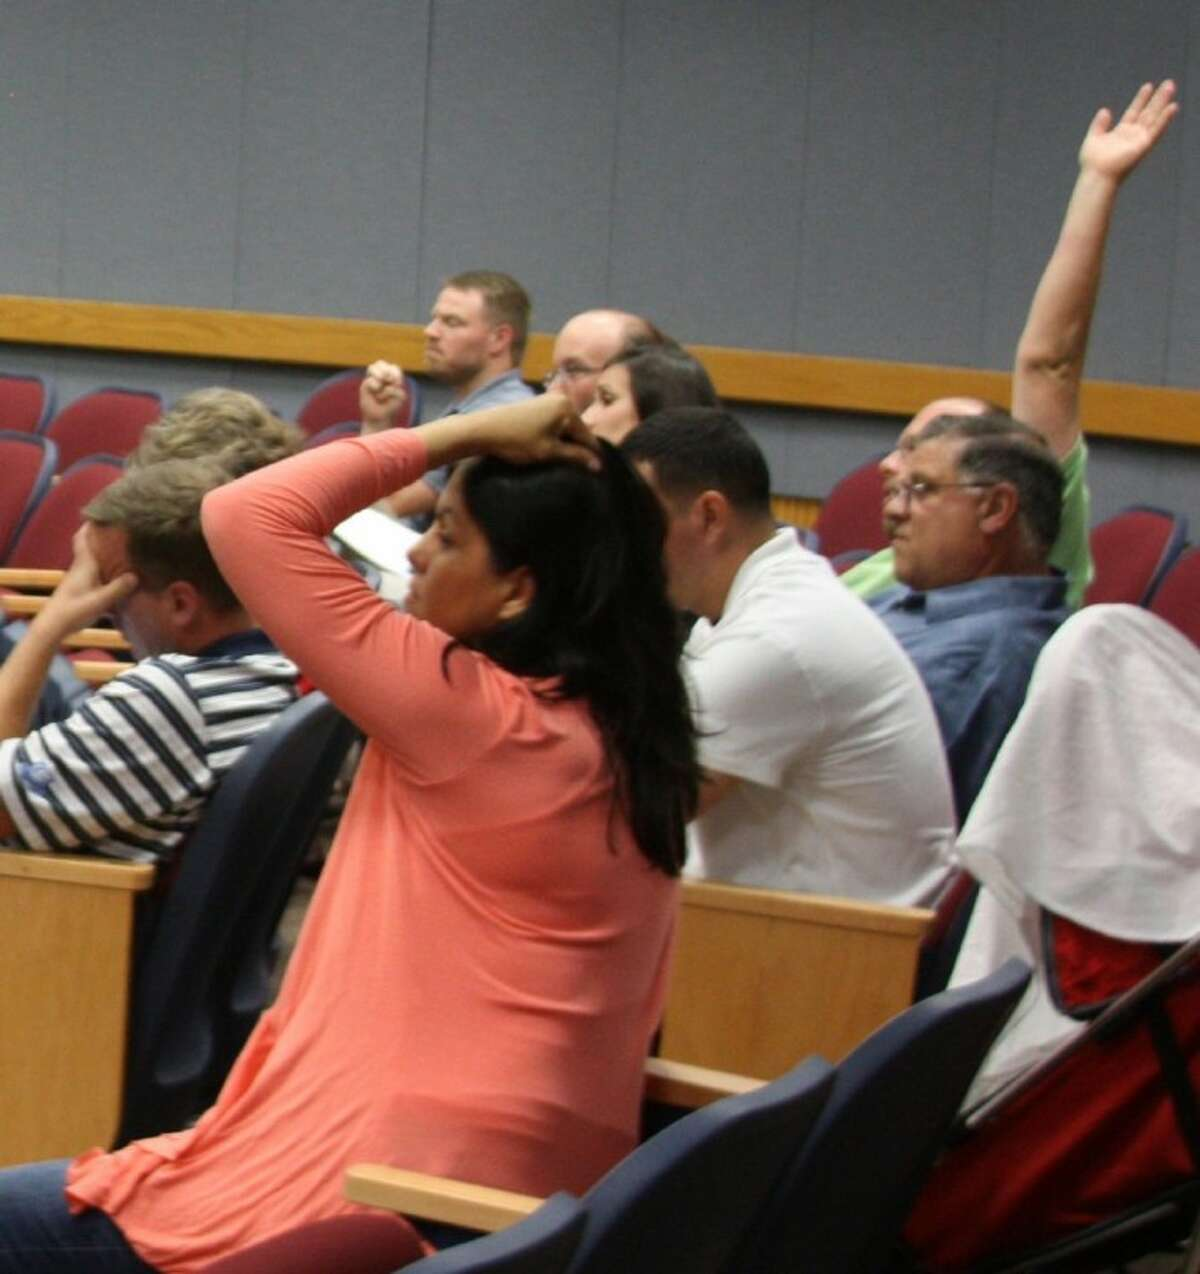 A group of frustrated homeowners urged the Pearland City Council to deny a proposed zone change request that would allow development of a new 40-bed hospital, medical office building and memory care unit at a council meeting held Monday (May 14).